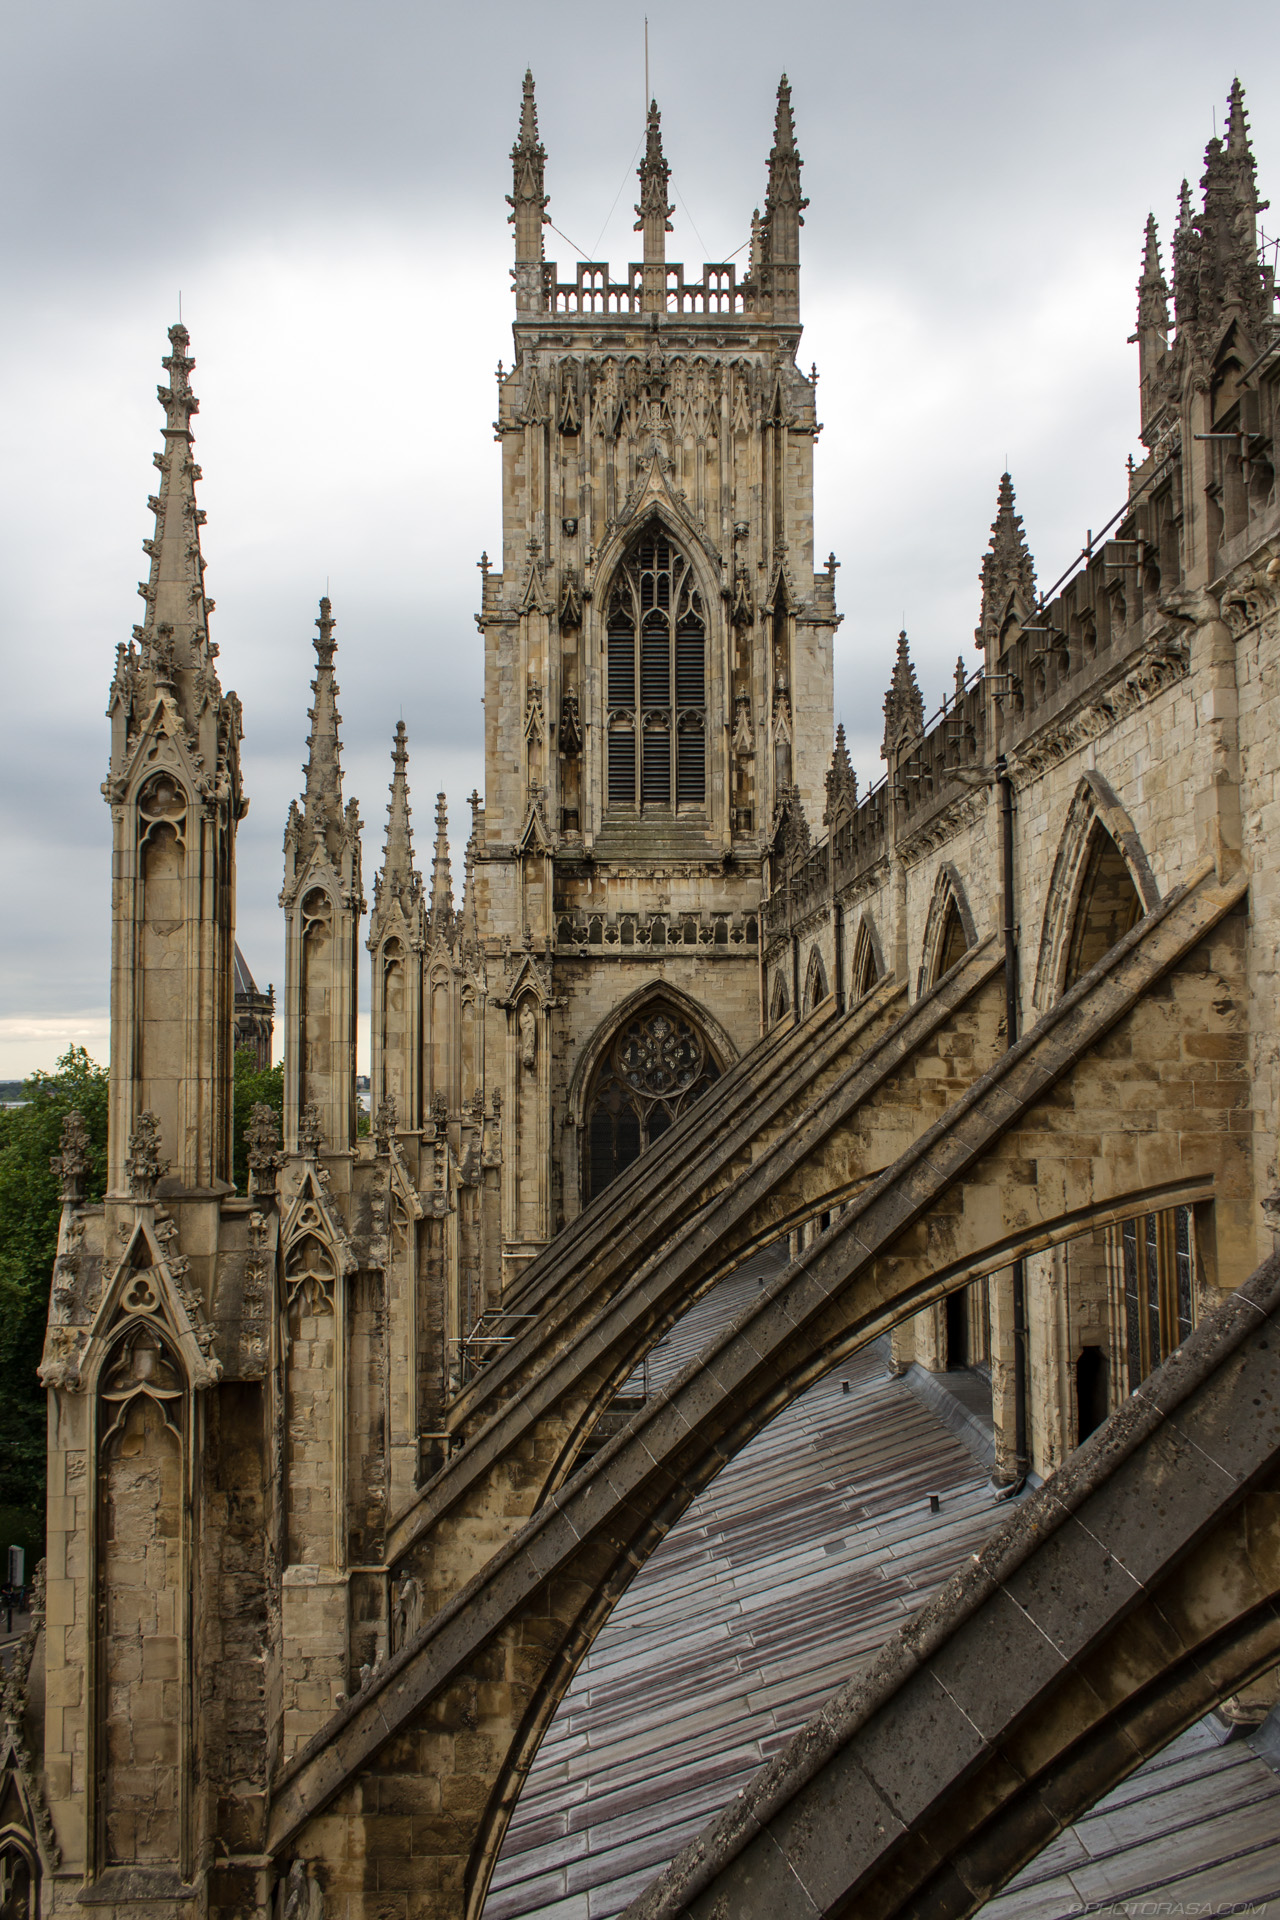 http://photorasa.com/yorkminster-cathedral/west-tower-from-the-roof/